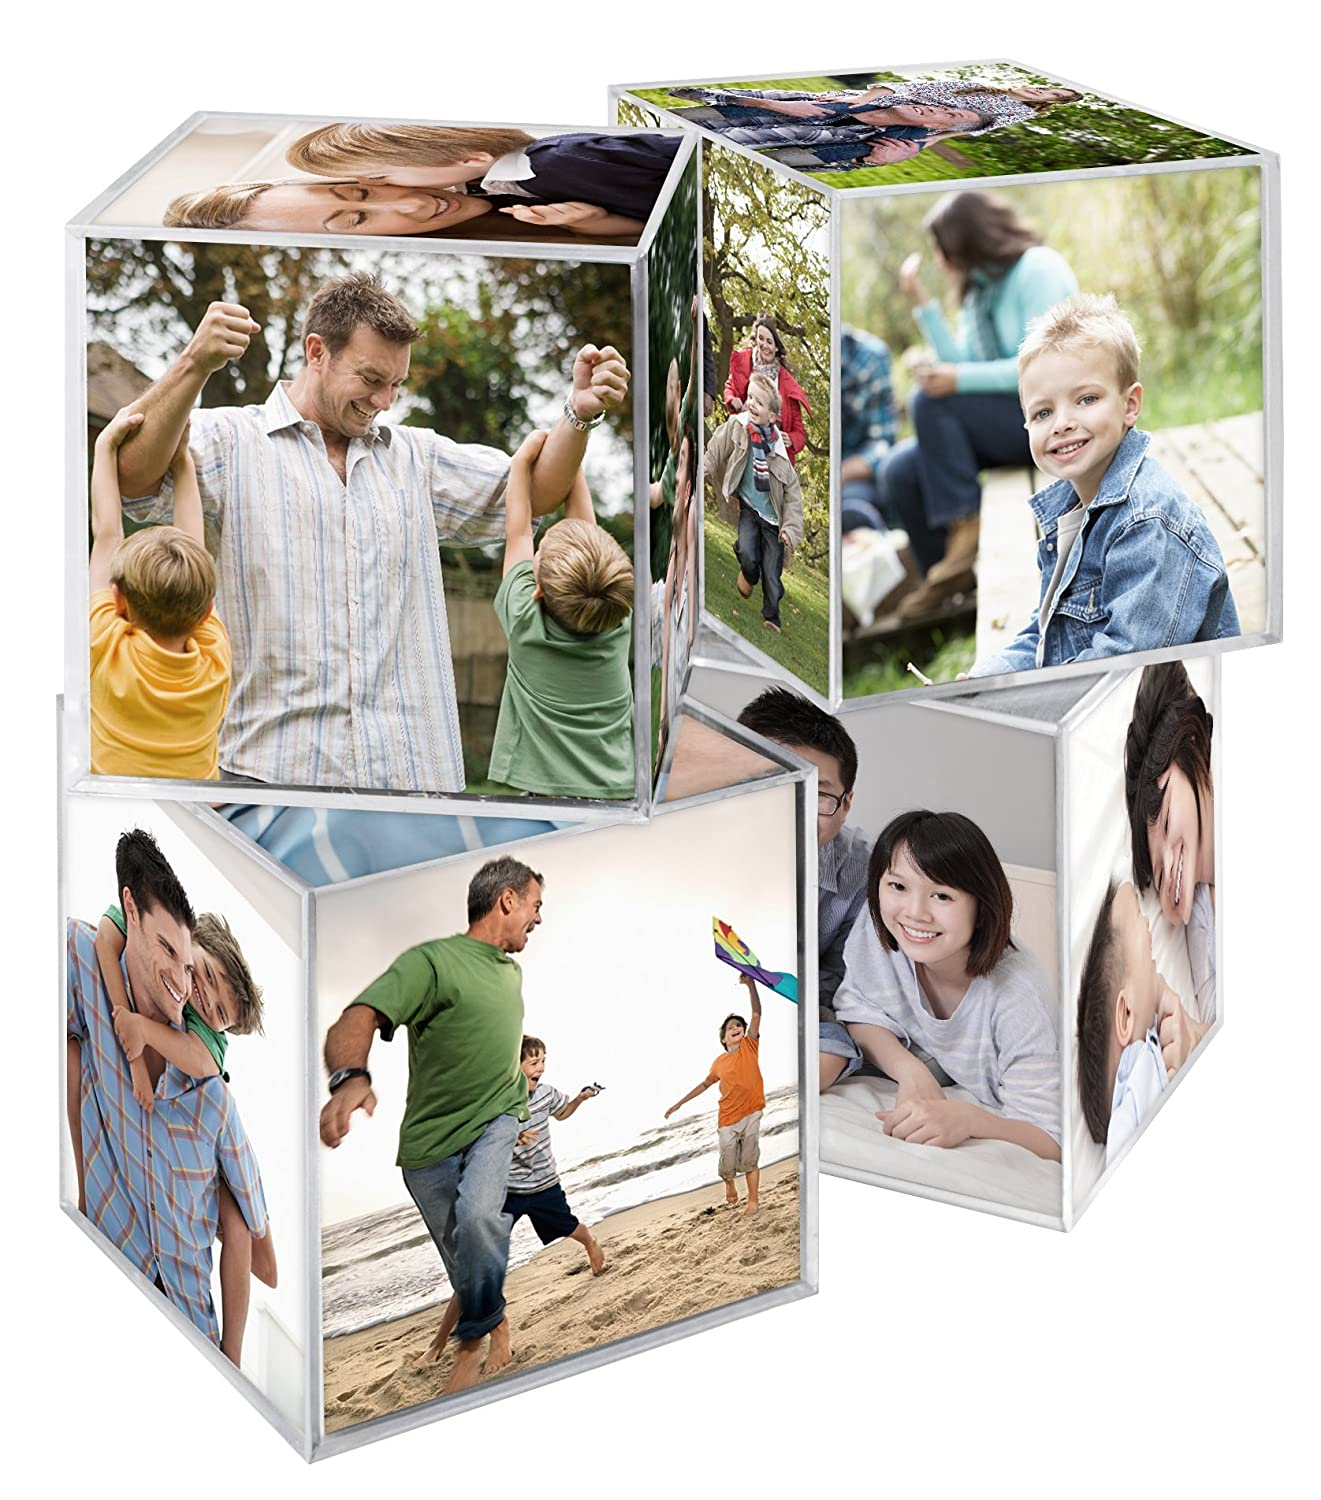 MCS Clear Plastic 6-Sided Photo Cube (4 Pack) MCS Industries Inc. 65750